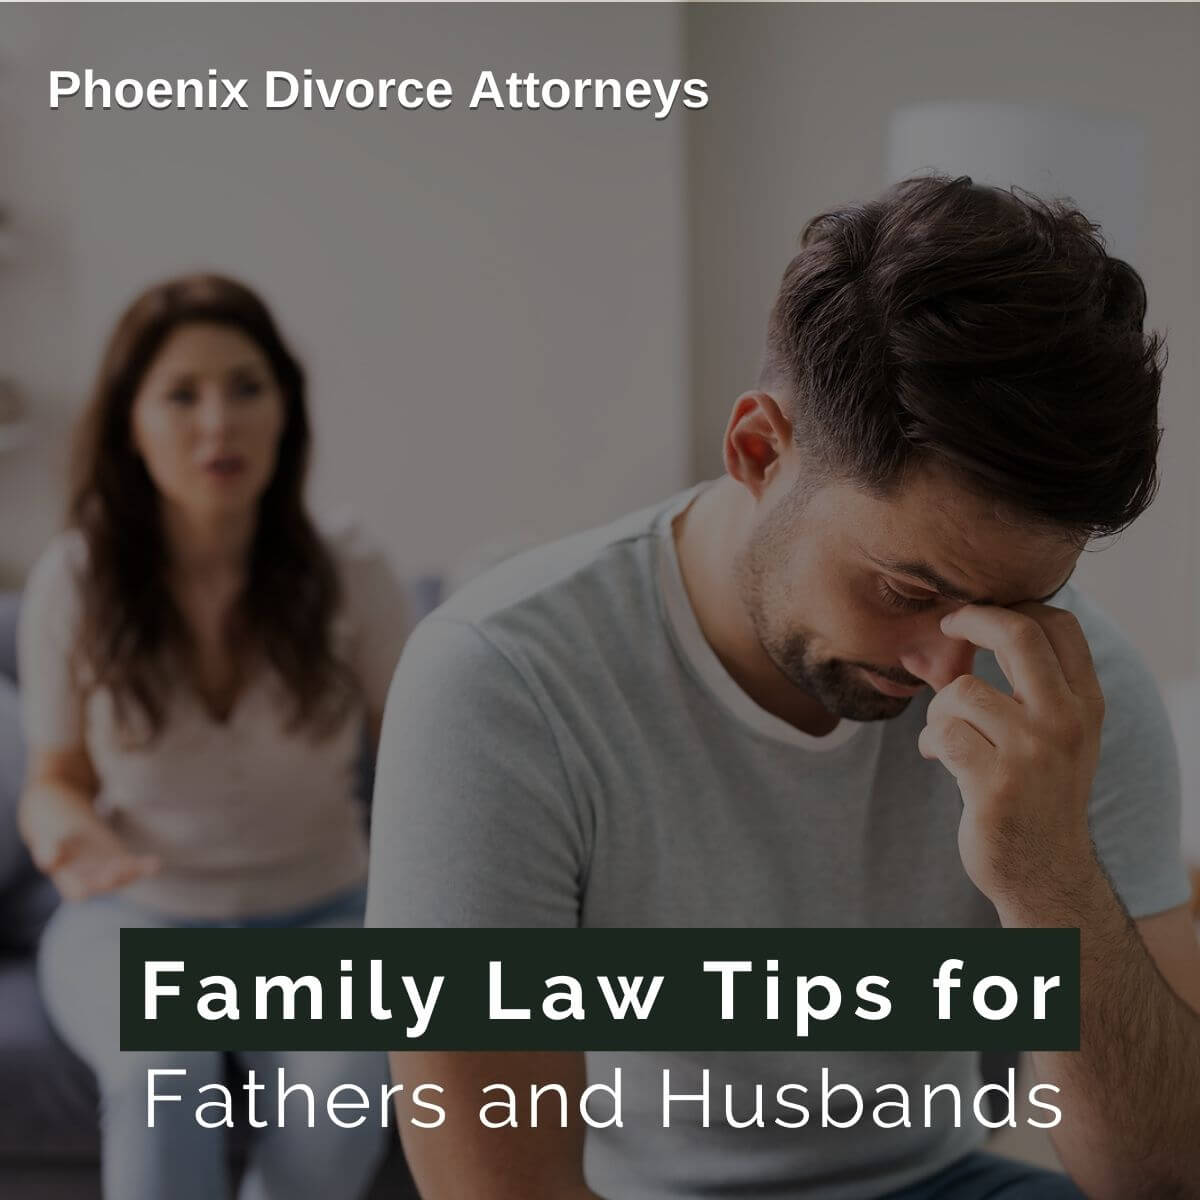 Family Law Tips for Fathers and Husbands